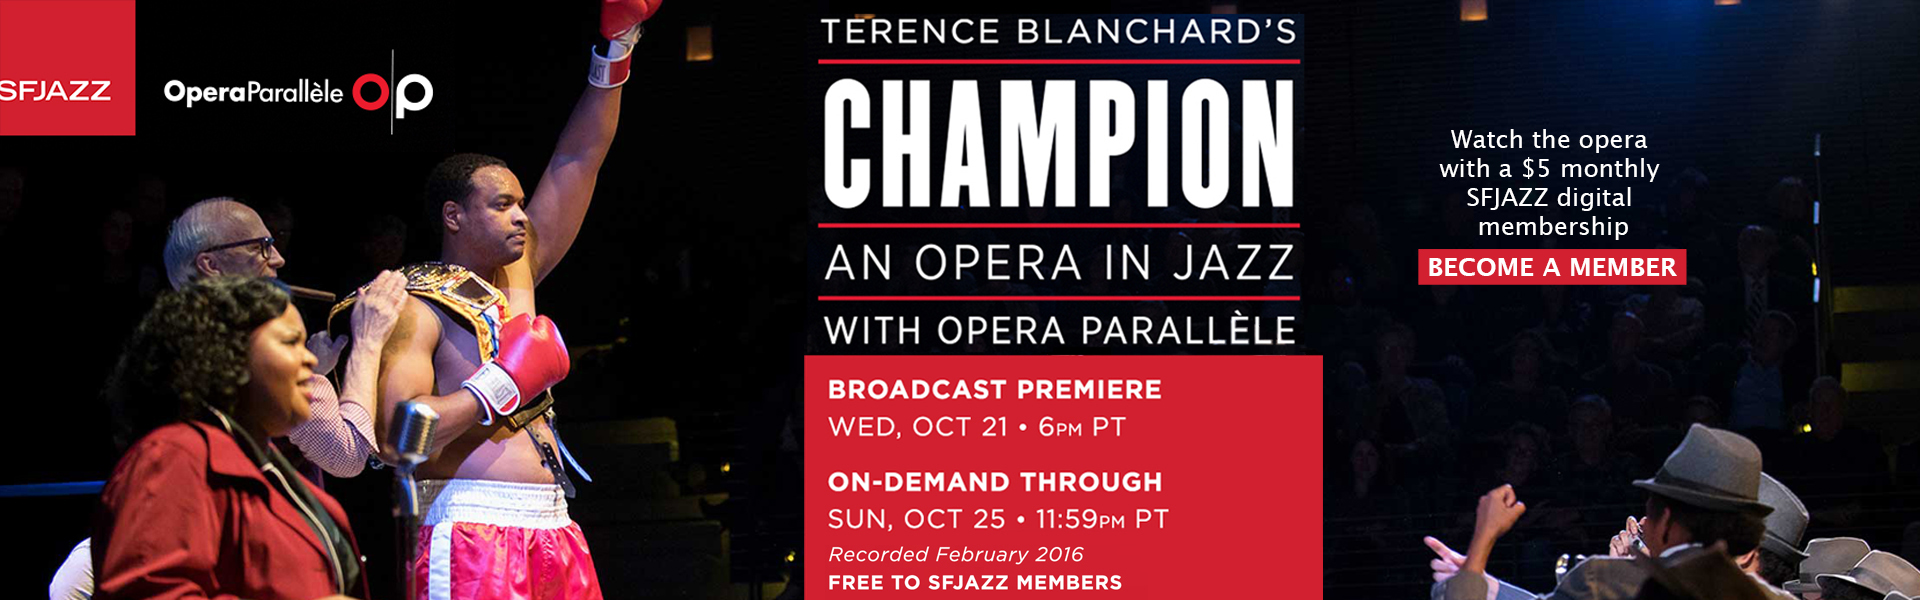 SFJAZZ & OP co-present Terence Blanchard's Champion